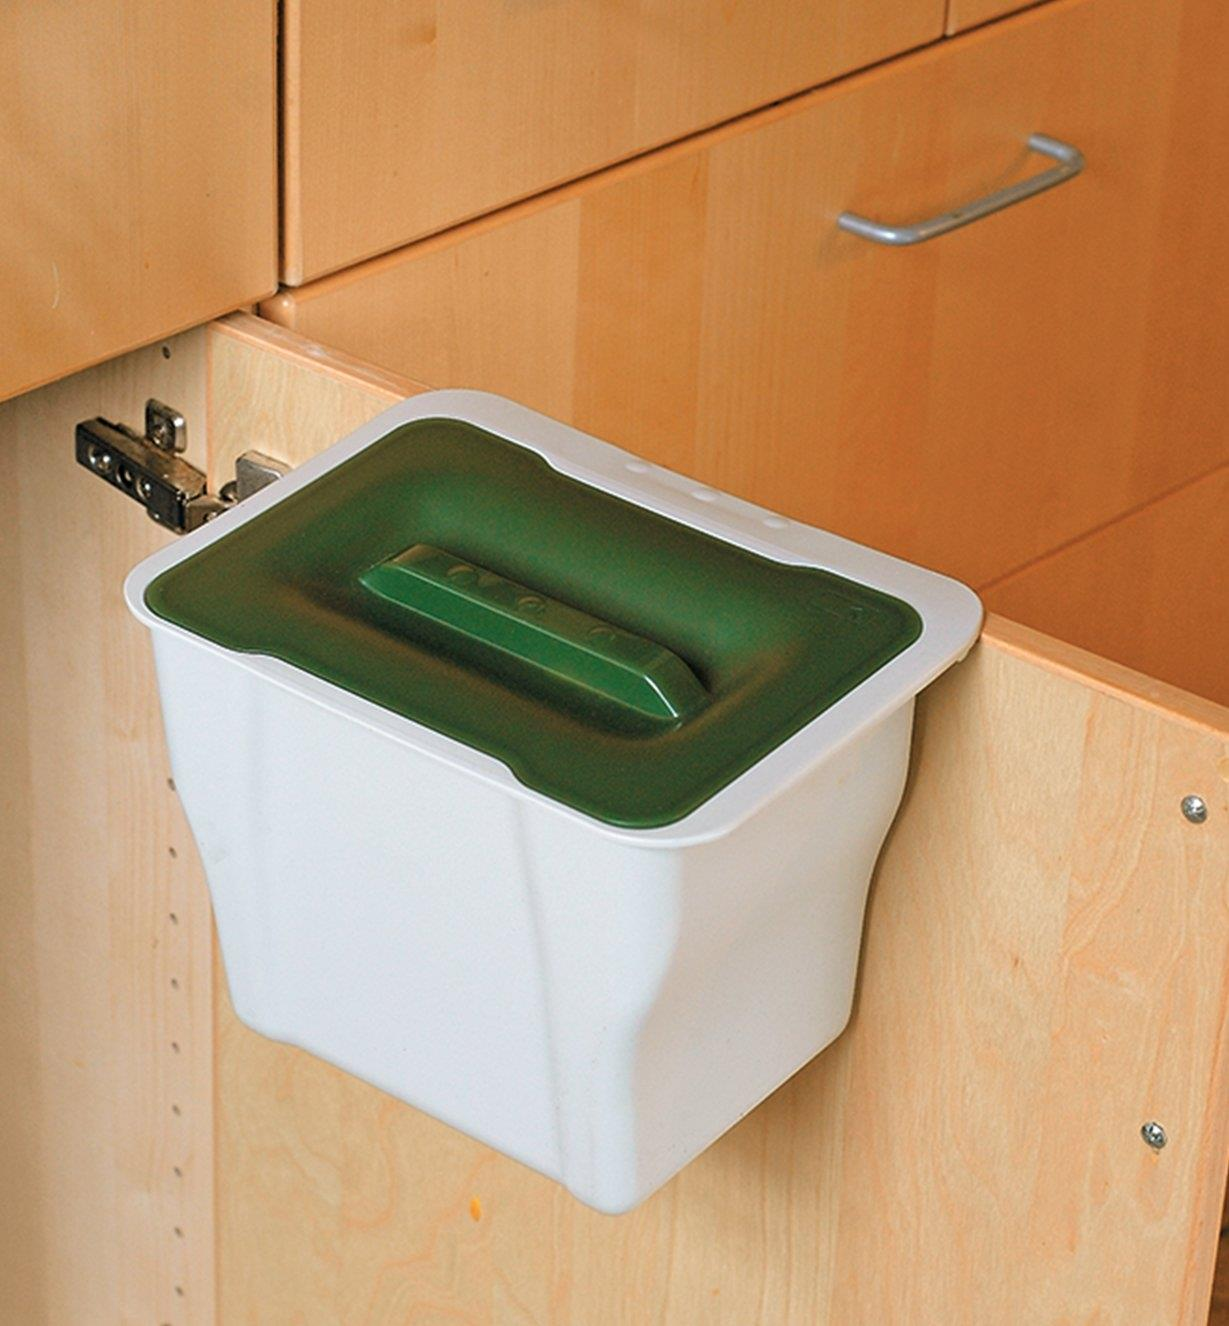 A Countertop Collection Bin hung over the inside of a cupboard door